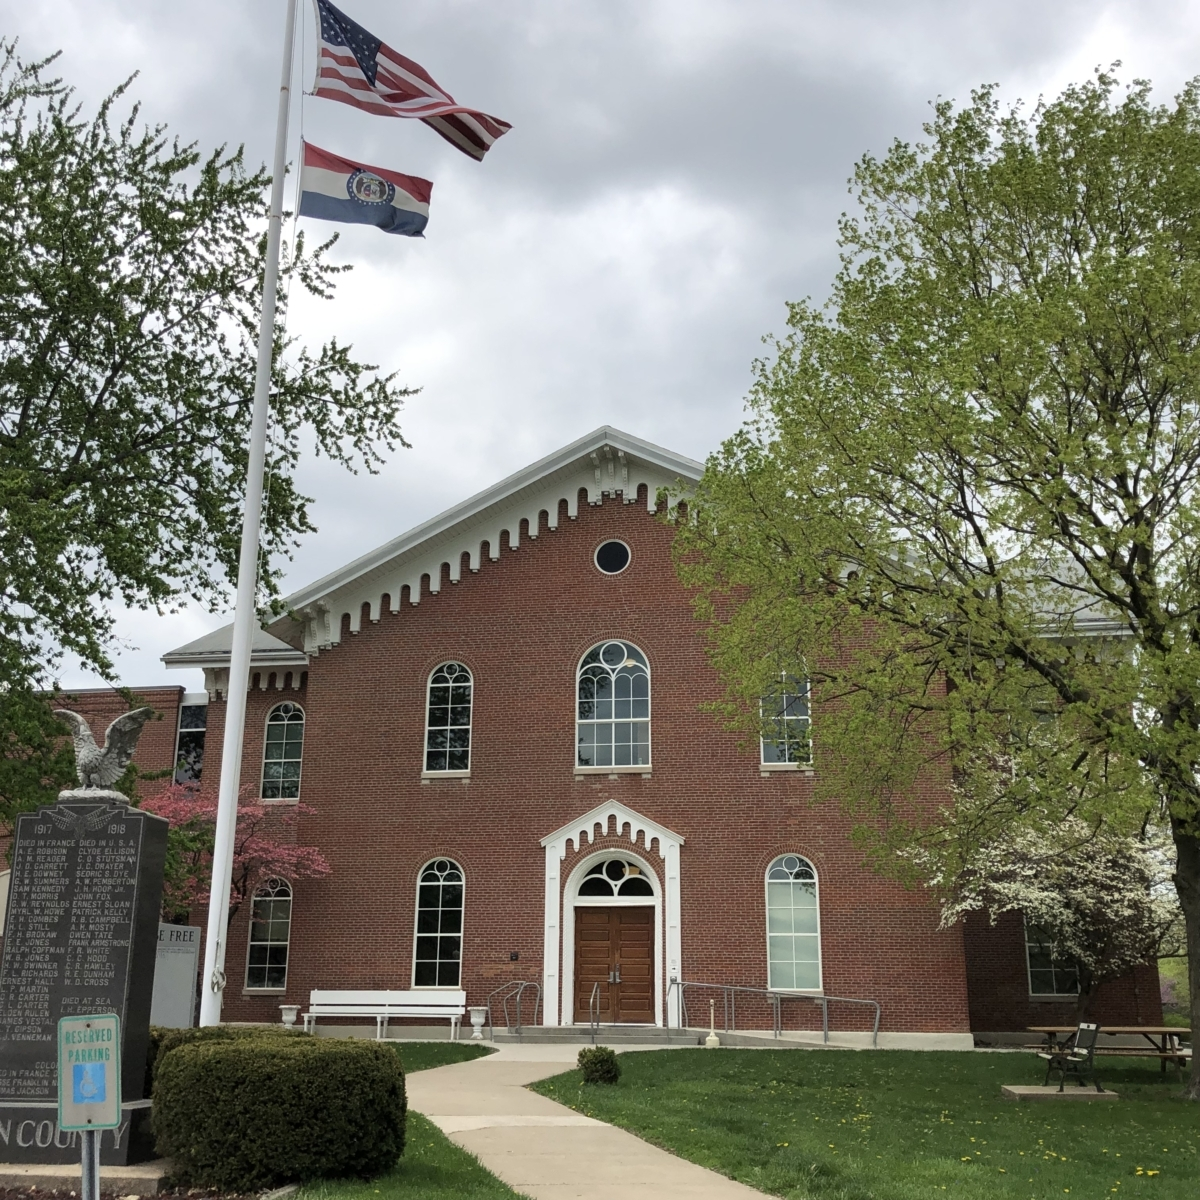 Macon County Courthouse. Photograph by Julia Chaney Faughn.